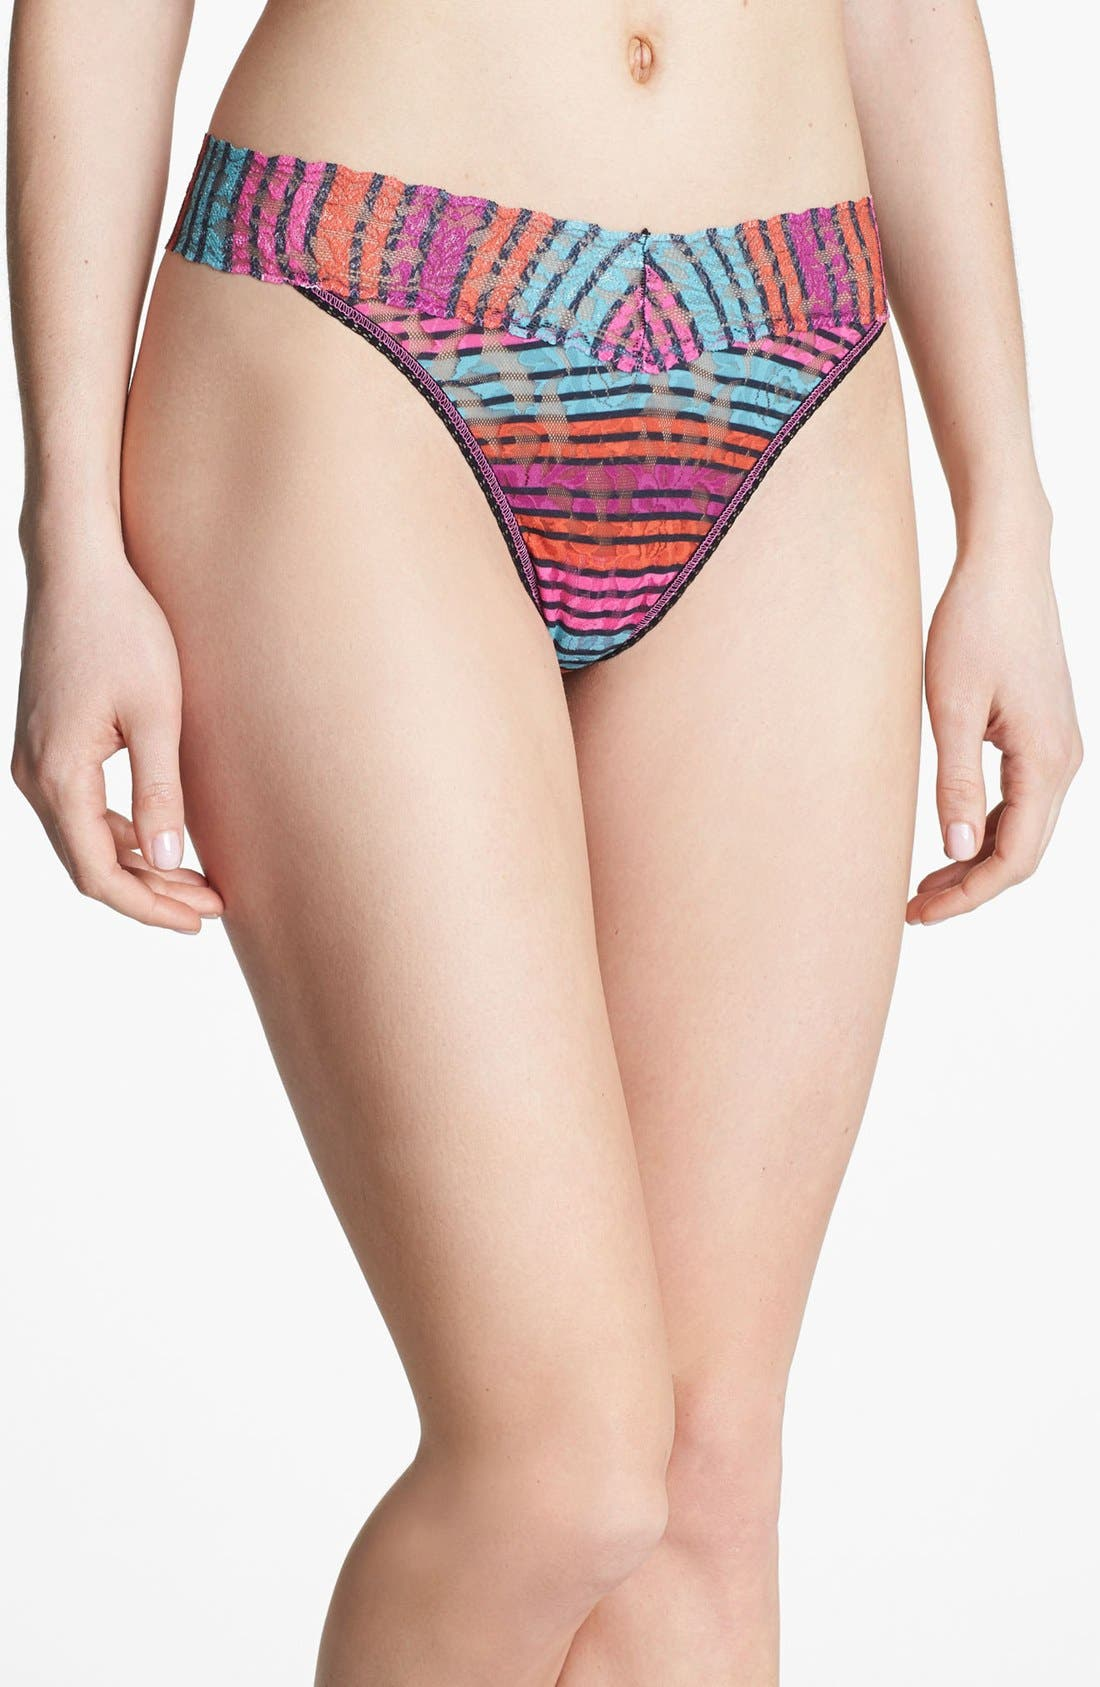 Alternate Image 1 Selected - Hanky Panky 'Licorice Stripe' Regular Rise Thong test IMT hello